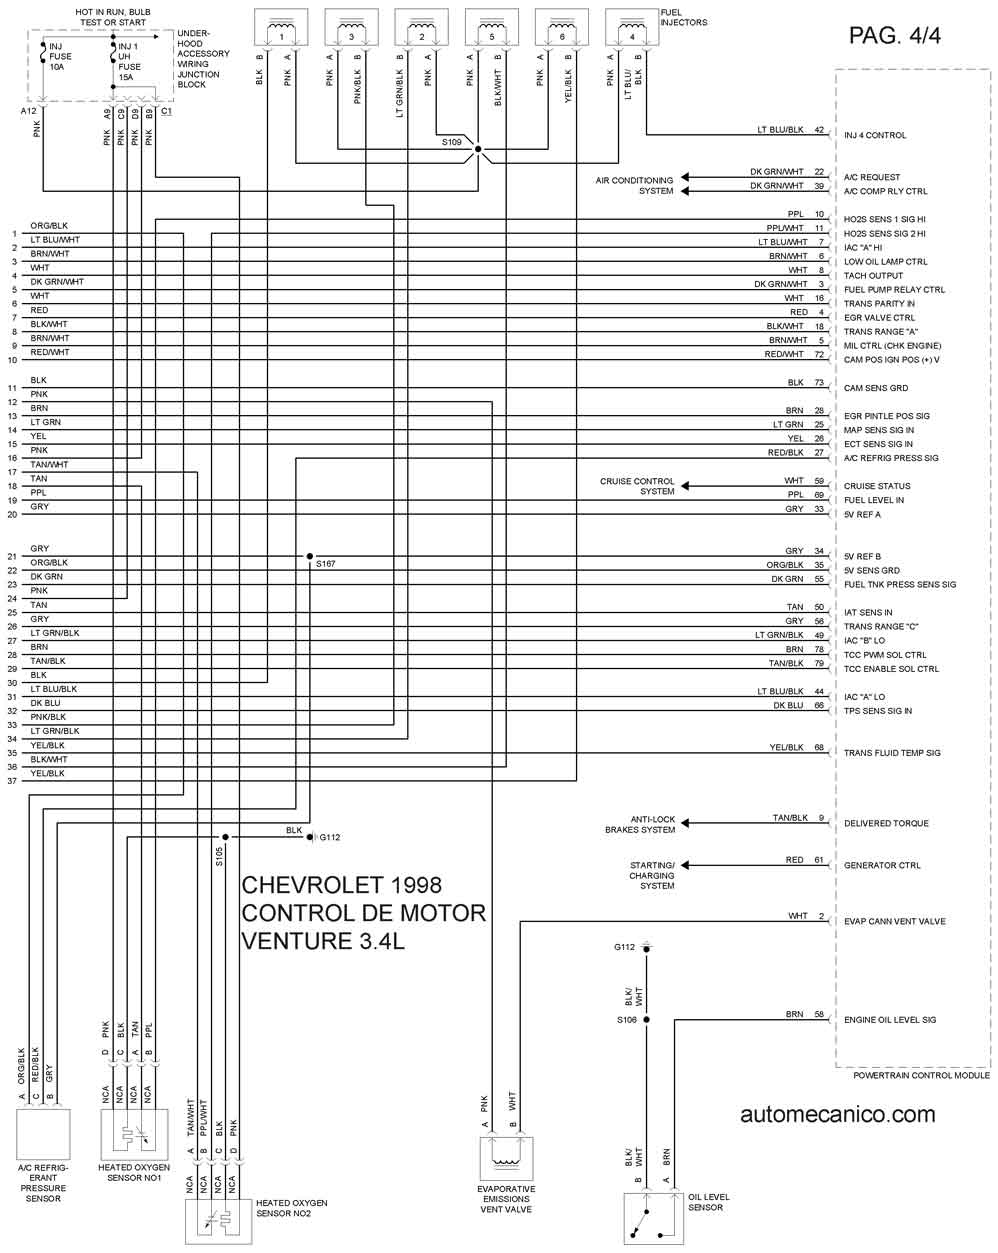 Buick Headlight Wiring Automotive Diagram Lacrosse Diagrama De Motor Hyundai 2000 Free Engine 2006 2004 Century